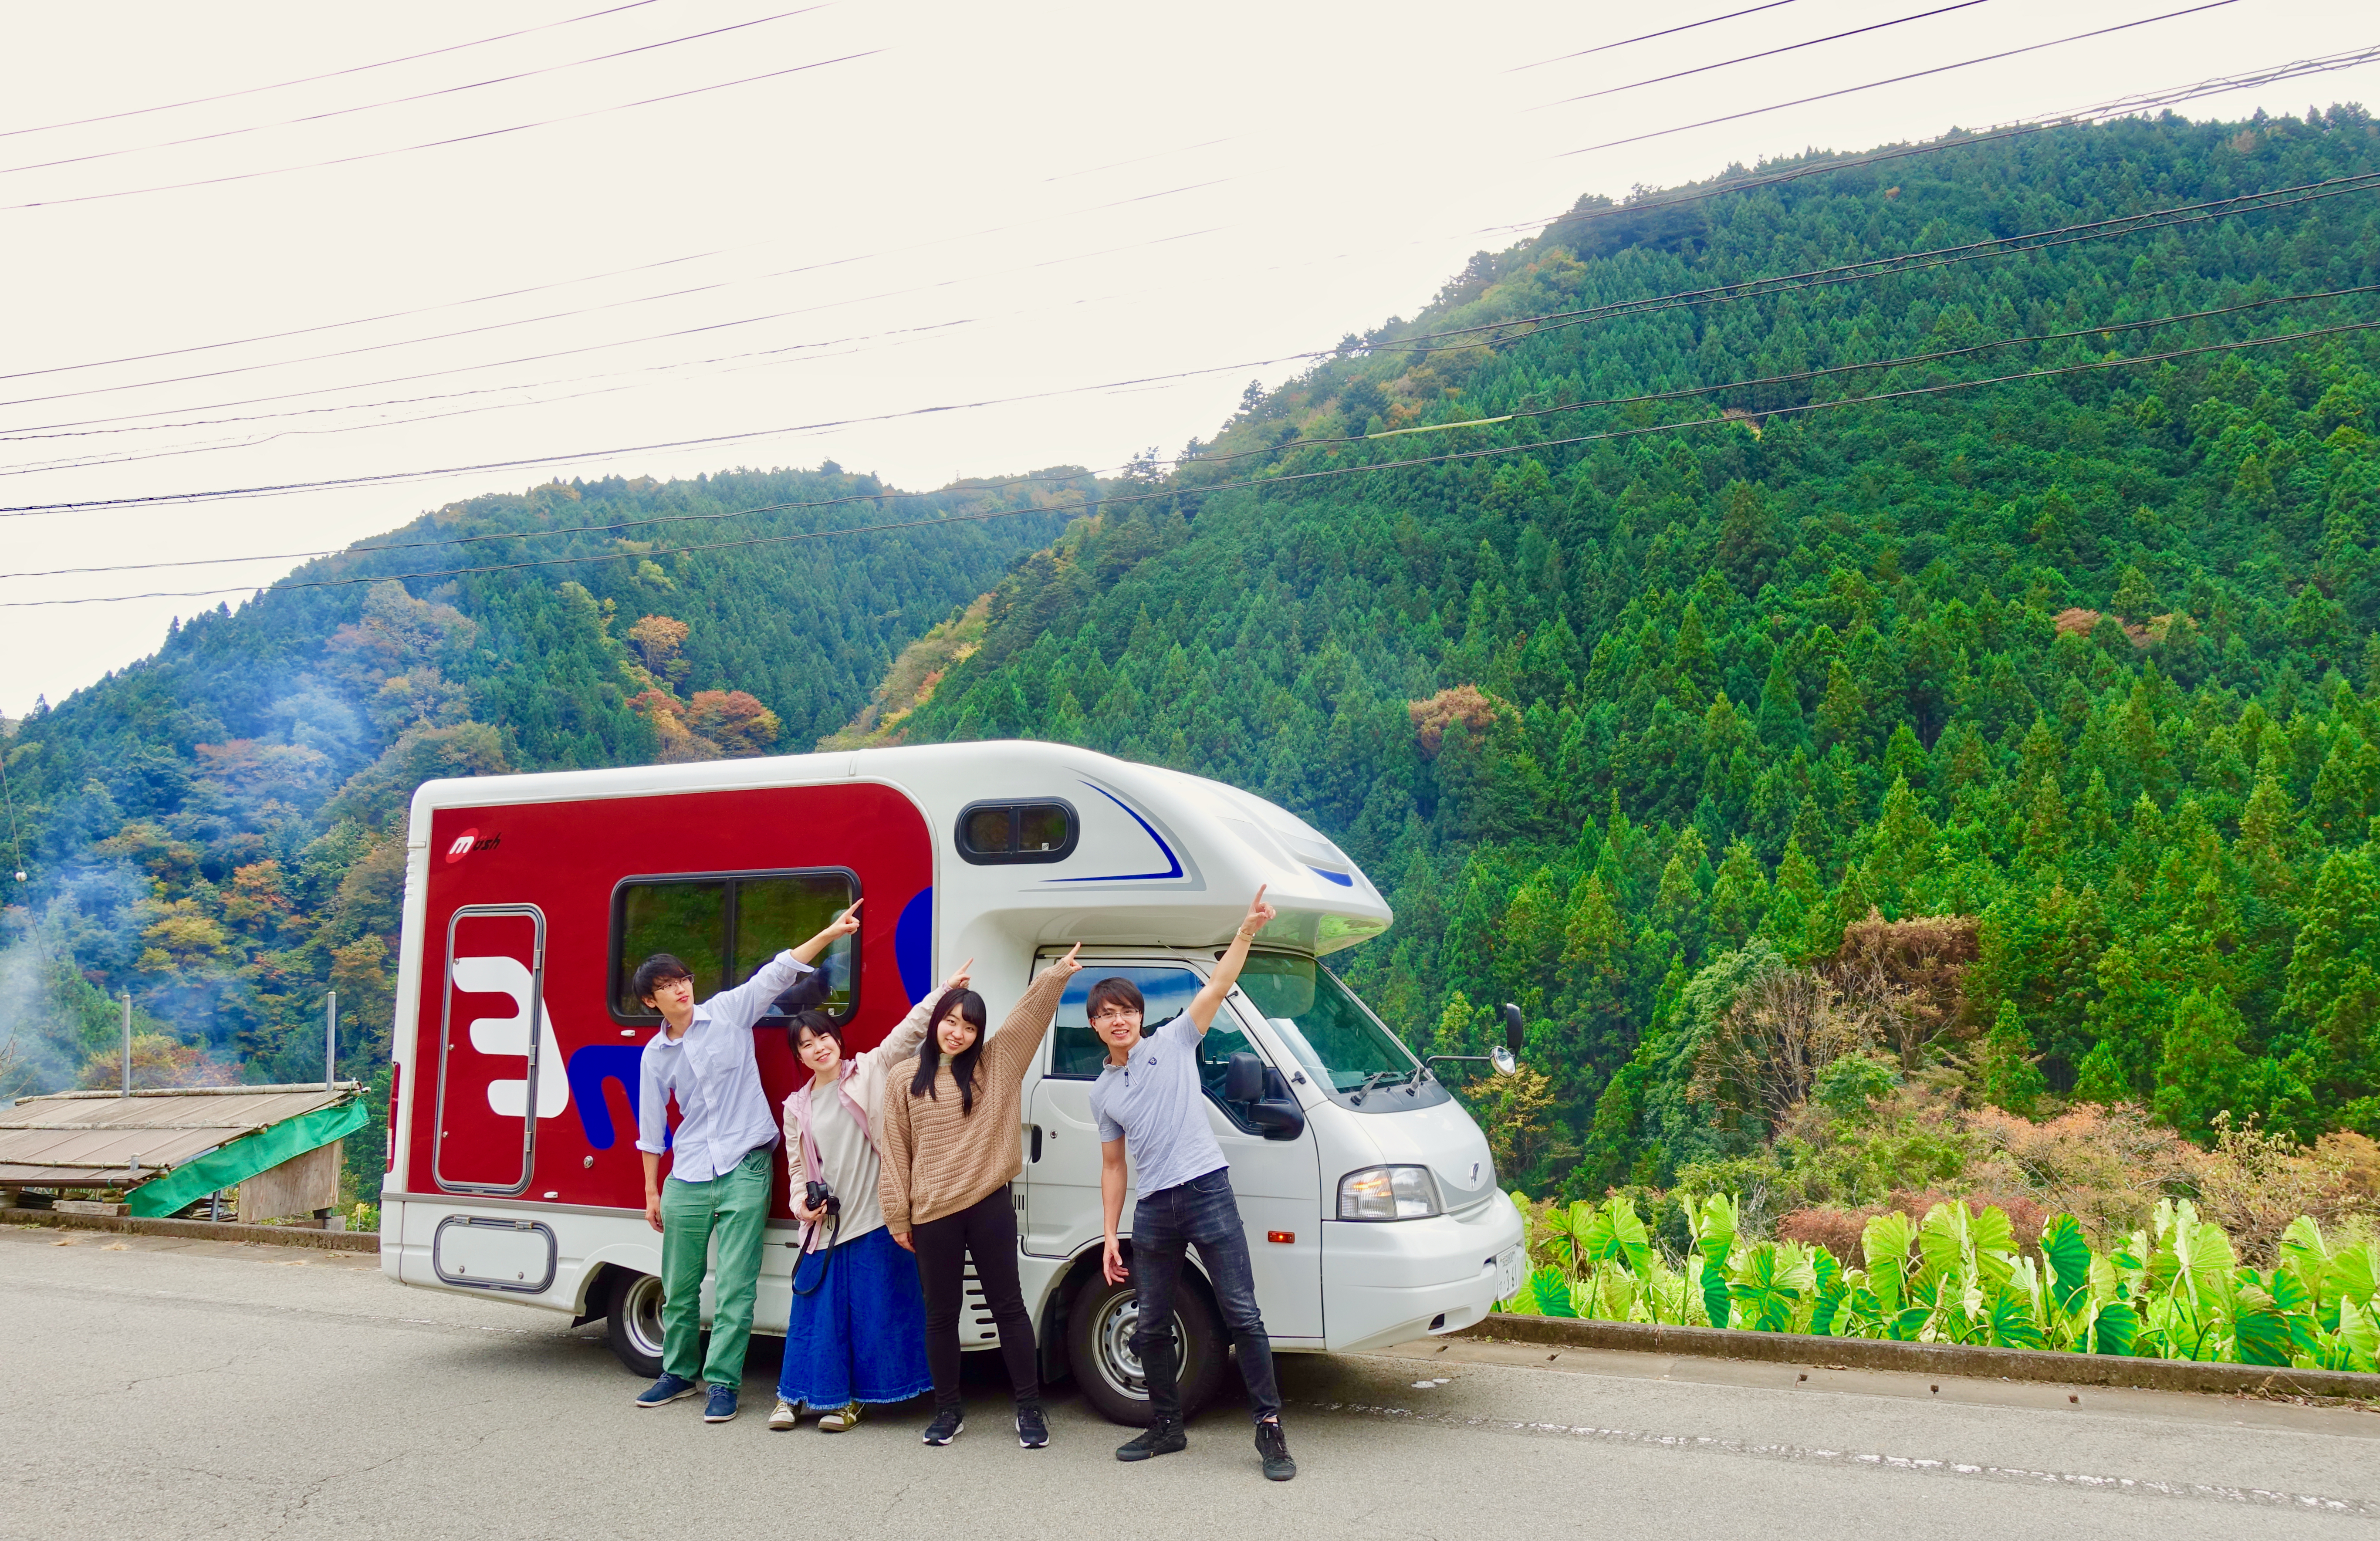 Camping Car Tour in Kosuge Village – Just 2 Hours Away From Tokyo!